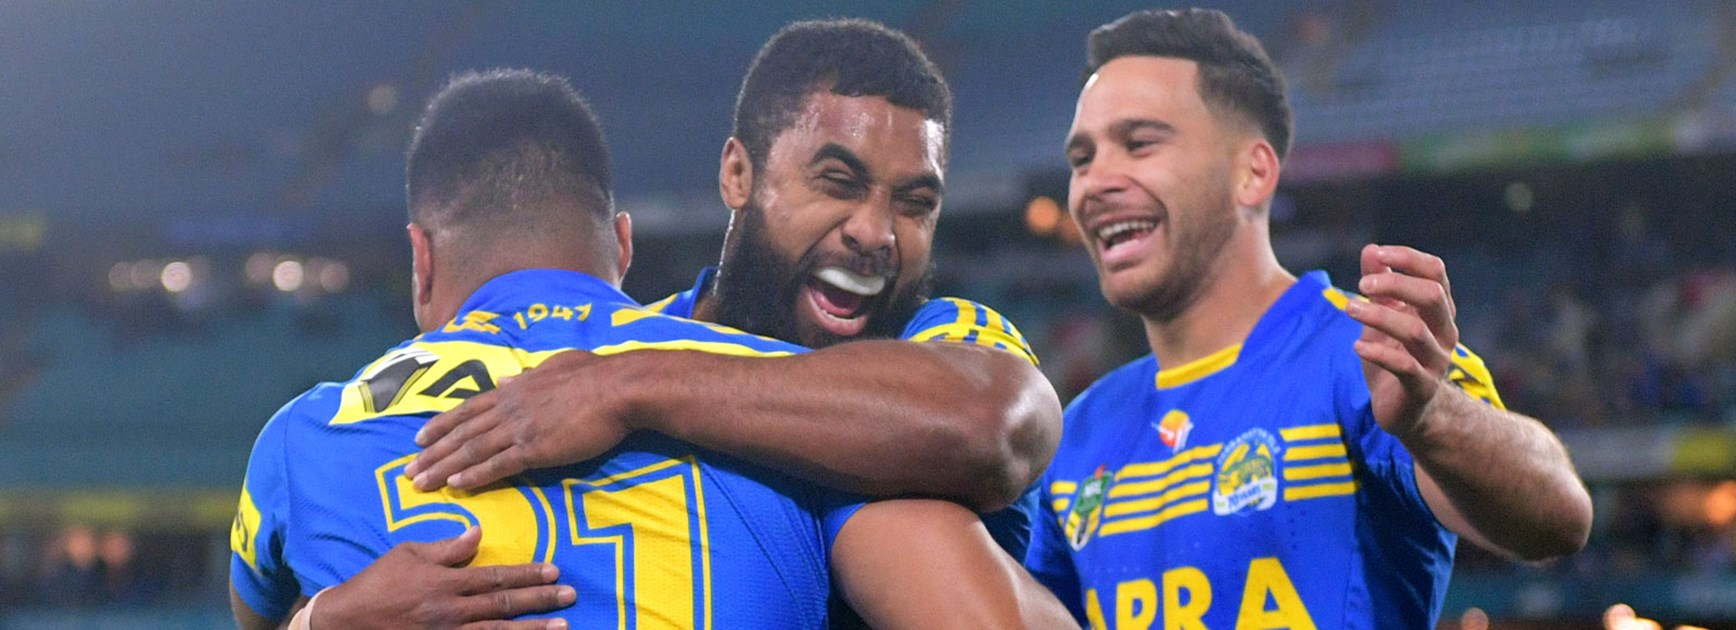 Eels stamp finals credentials